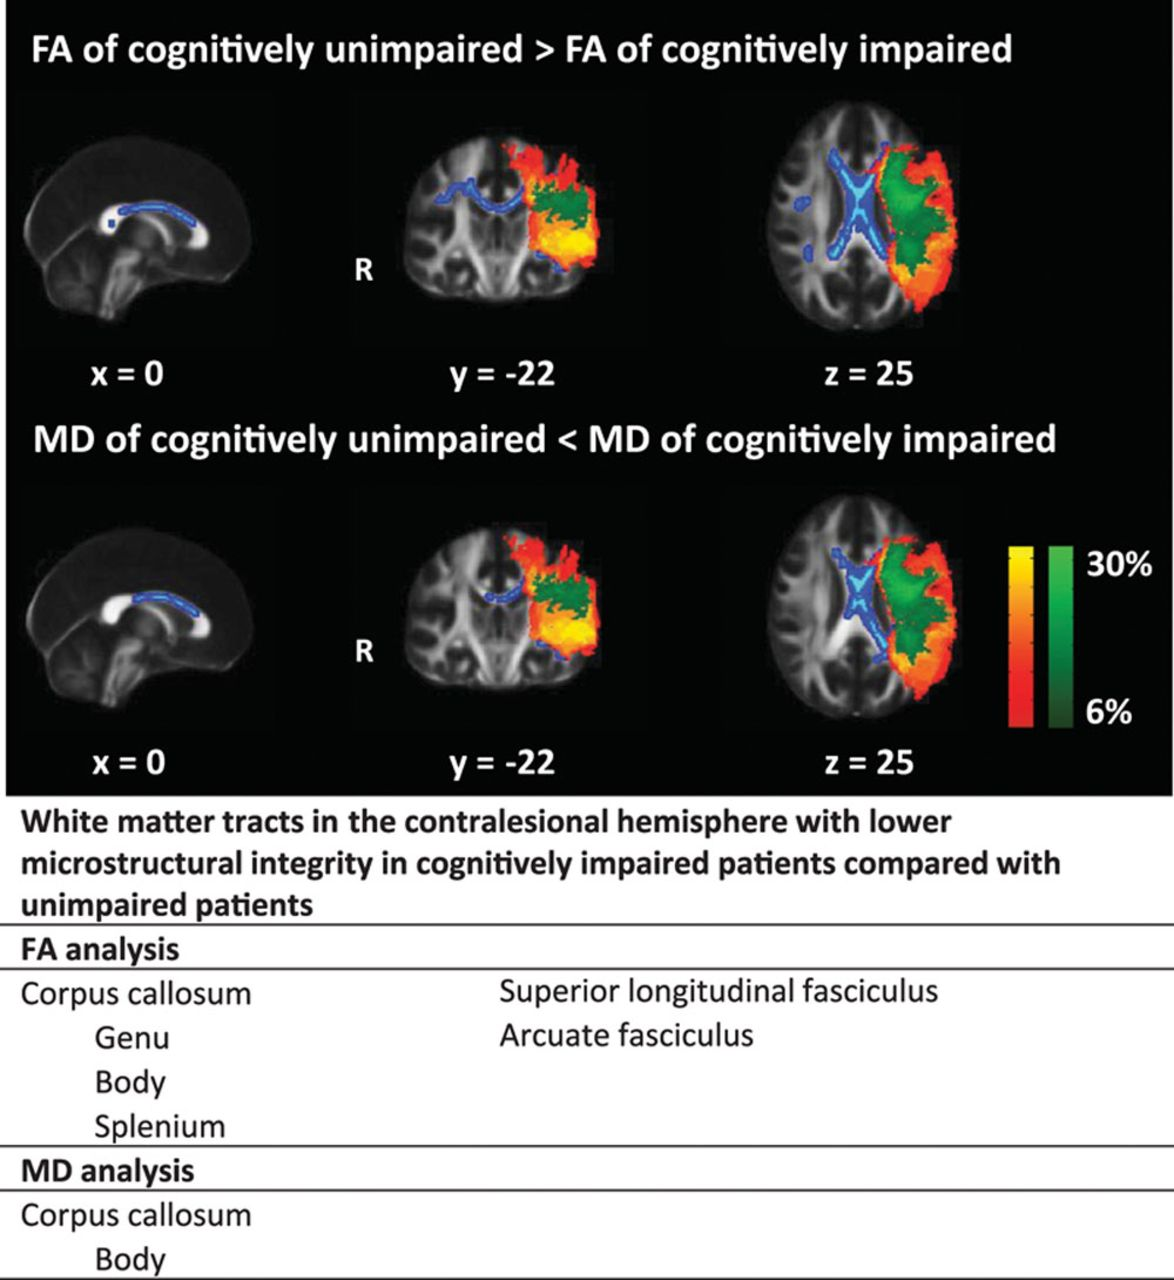 Remote Lower White Matter Integrity Increases the Risk of Long-Term